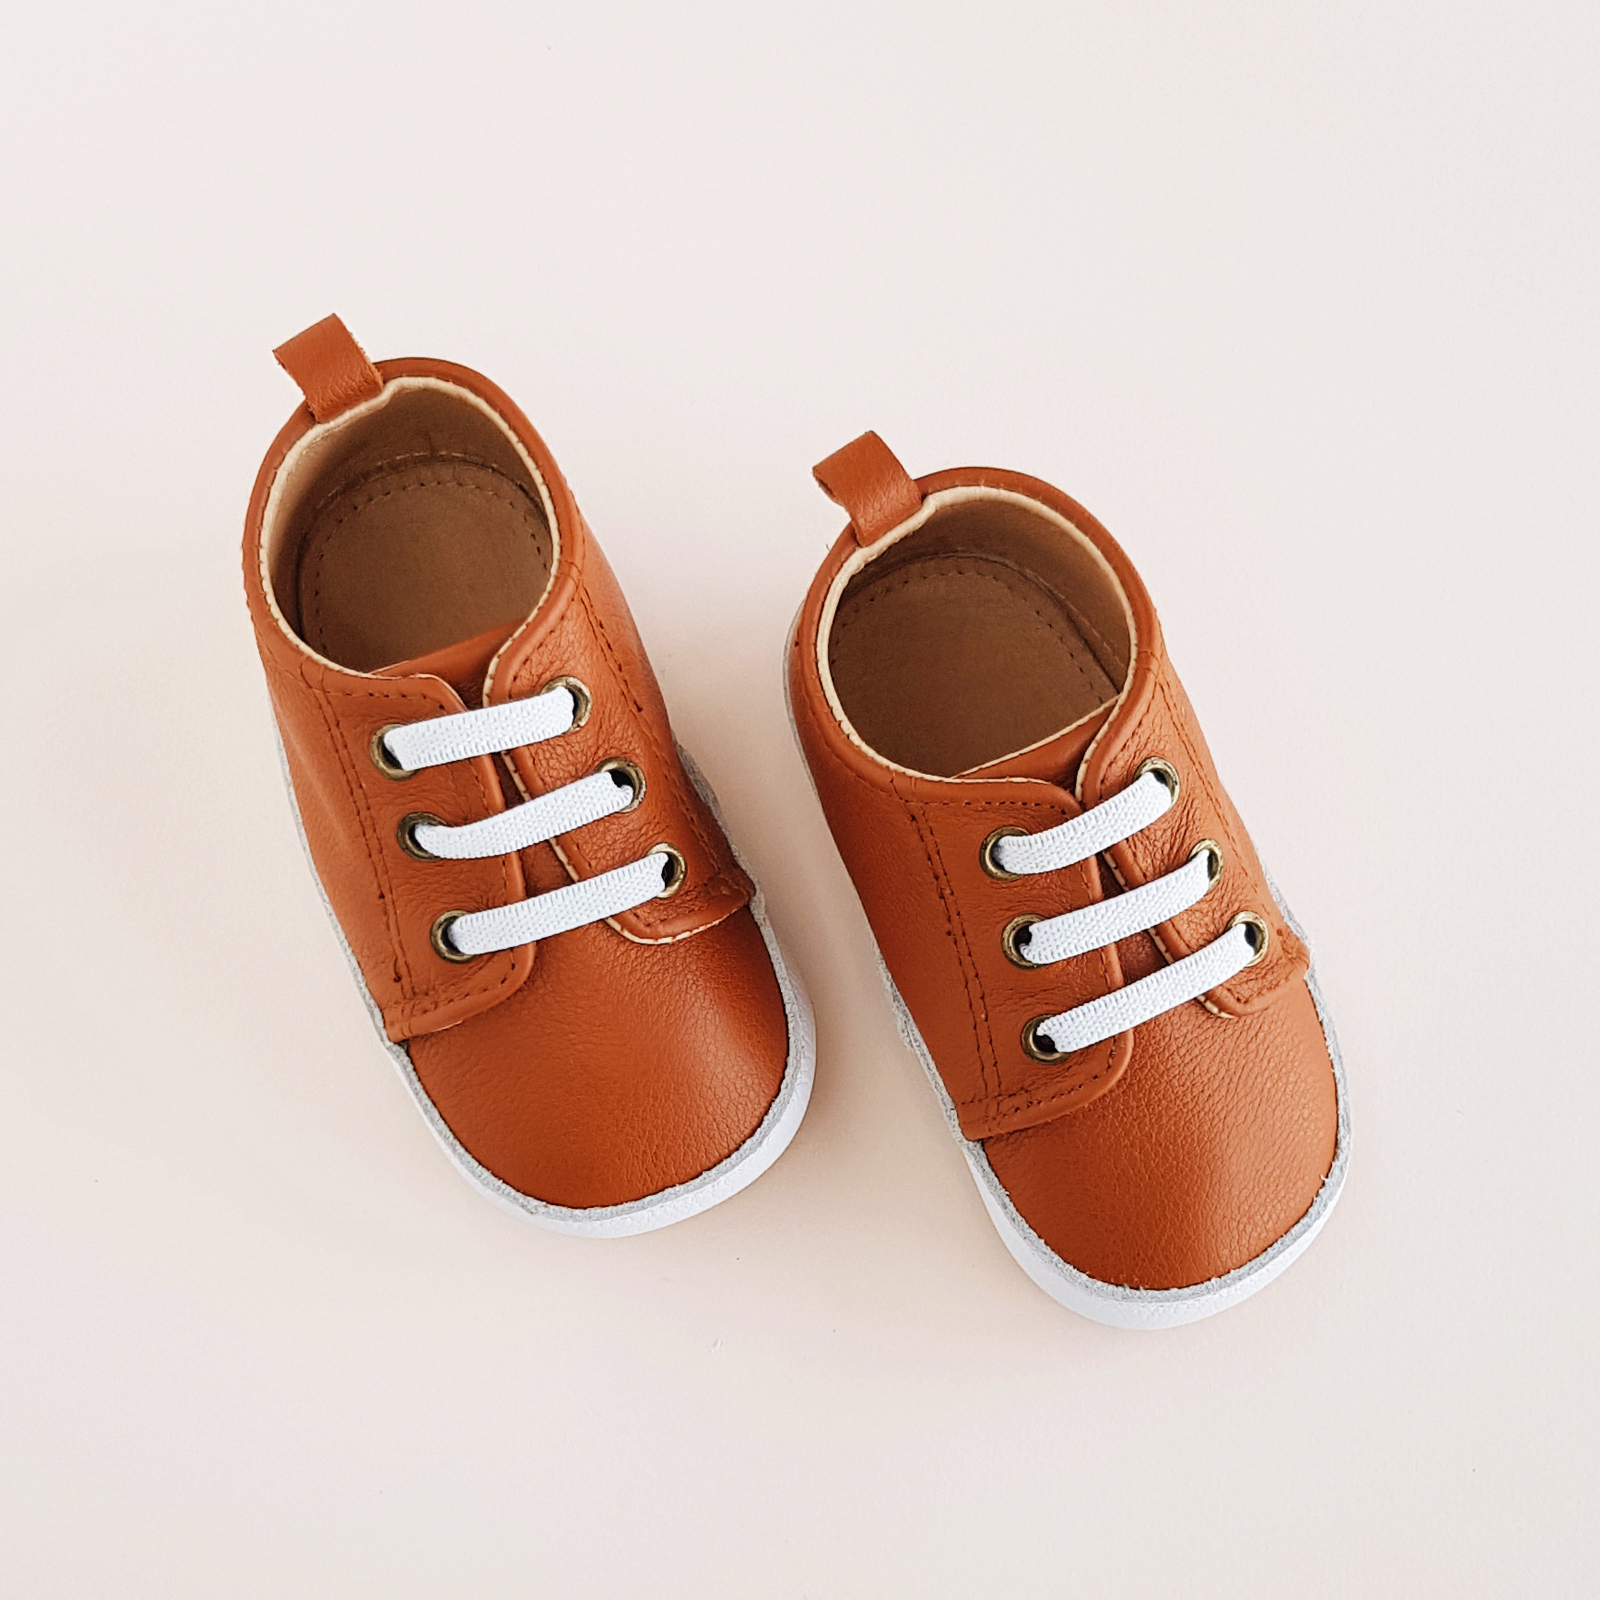 Leather Shoes1600x16001.jpg